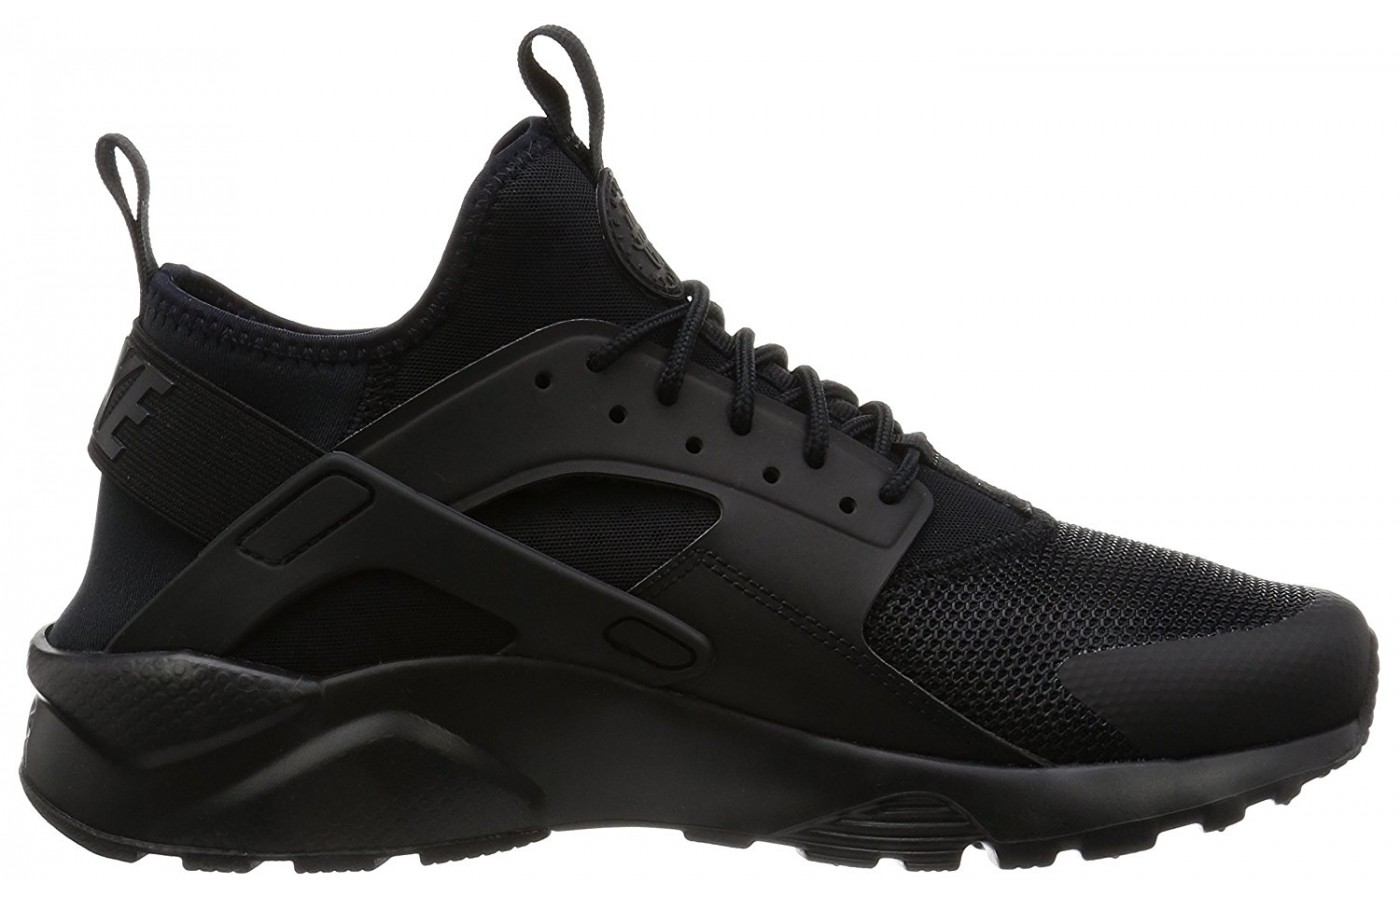 0c07094fc5fb Nike Air Huarache Ultra Reviewed   Tested for Performance - WalkJogRun